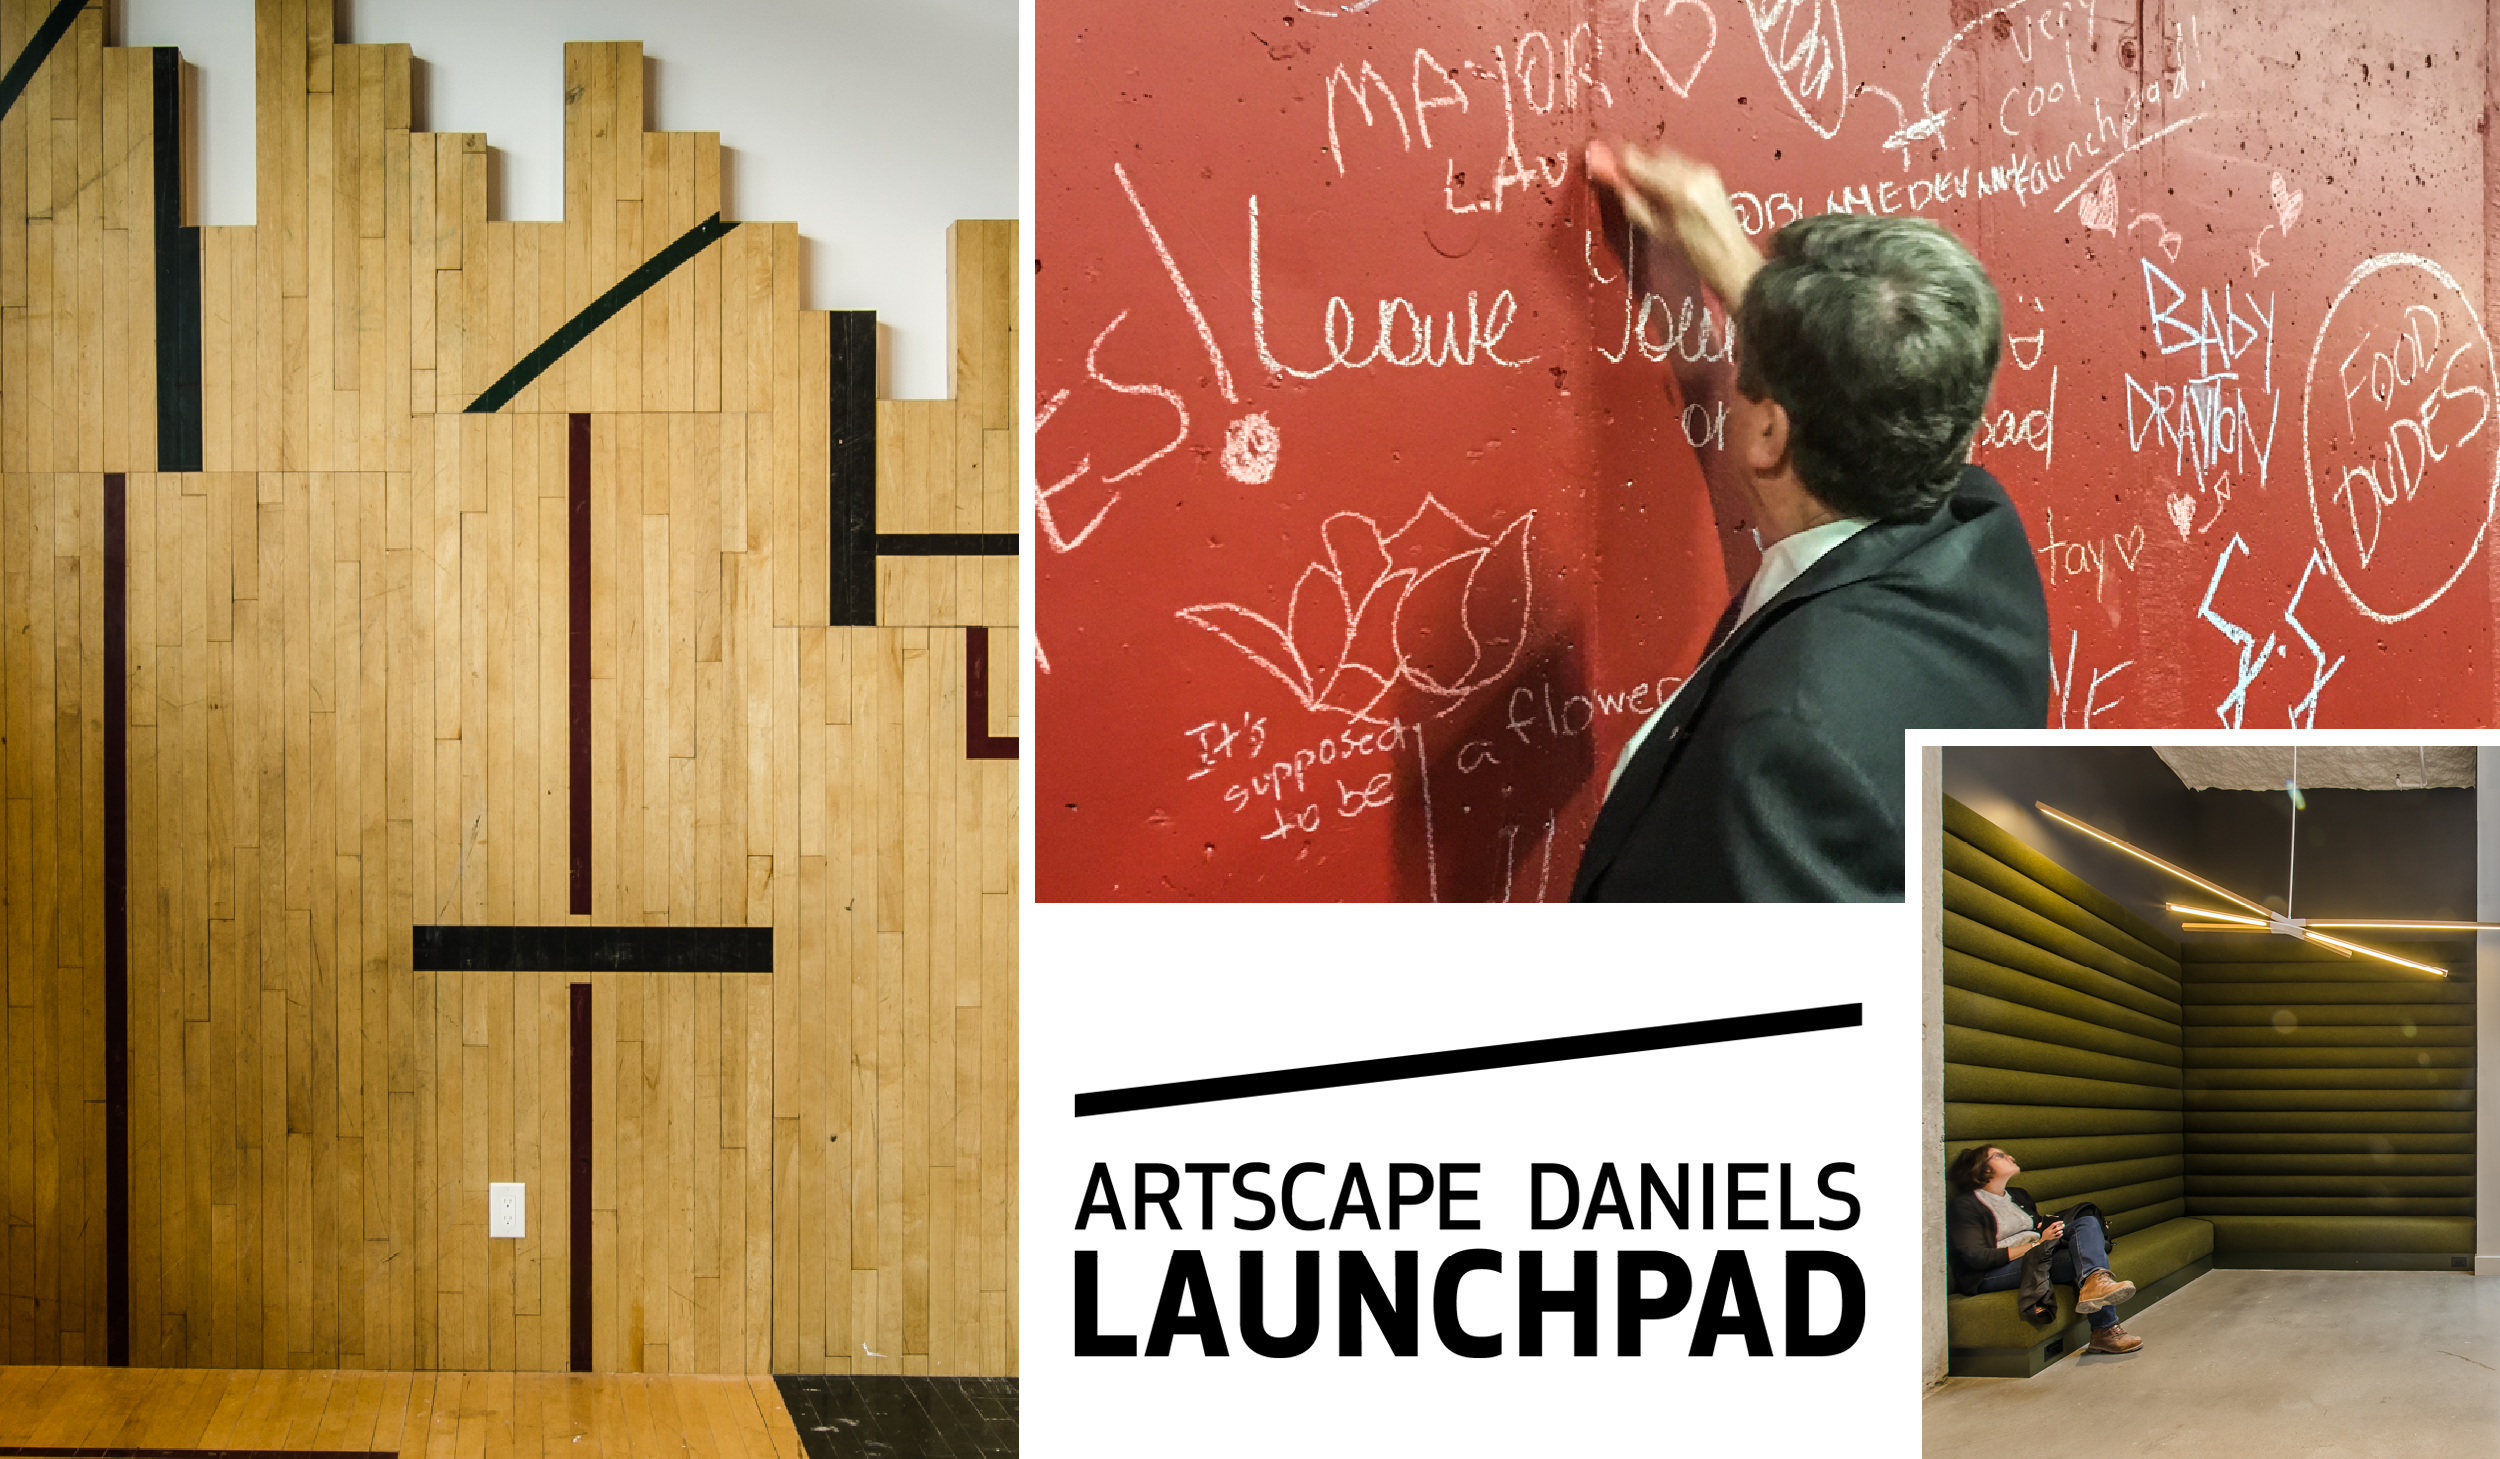 collage of images showing a repurposed gym floor as a wall covering, Mayor John Tory writing on a red wall, an olive corner booth with hanging light fixture, Artscape Daniels Launchpad logo